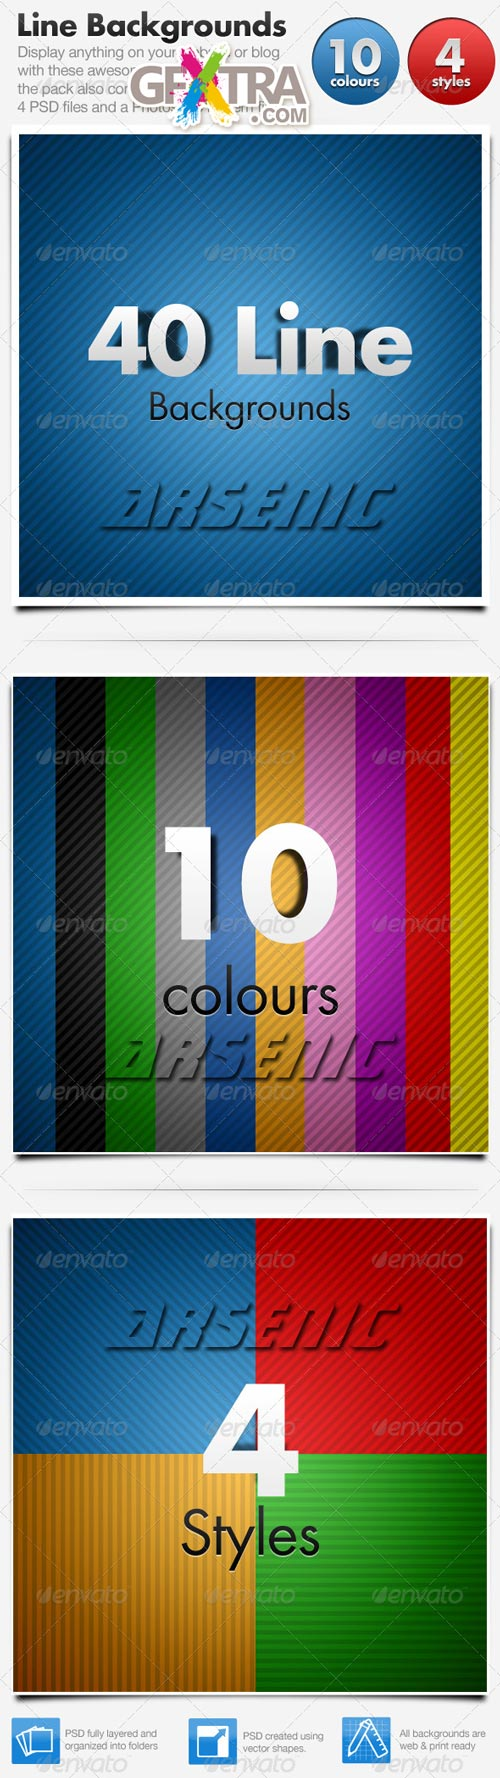 Line Backgrounds x 40 Horizontal & Diagonal - GraphicRiver - REUPLOADED!